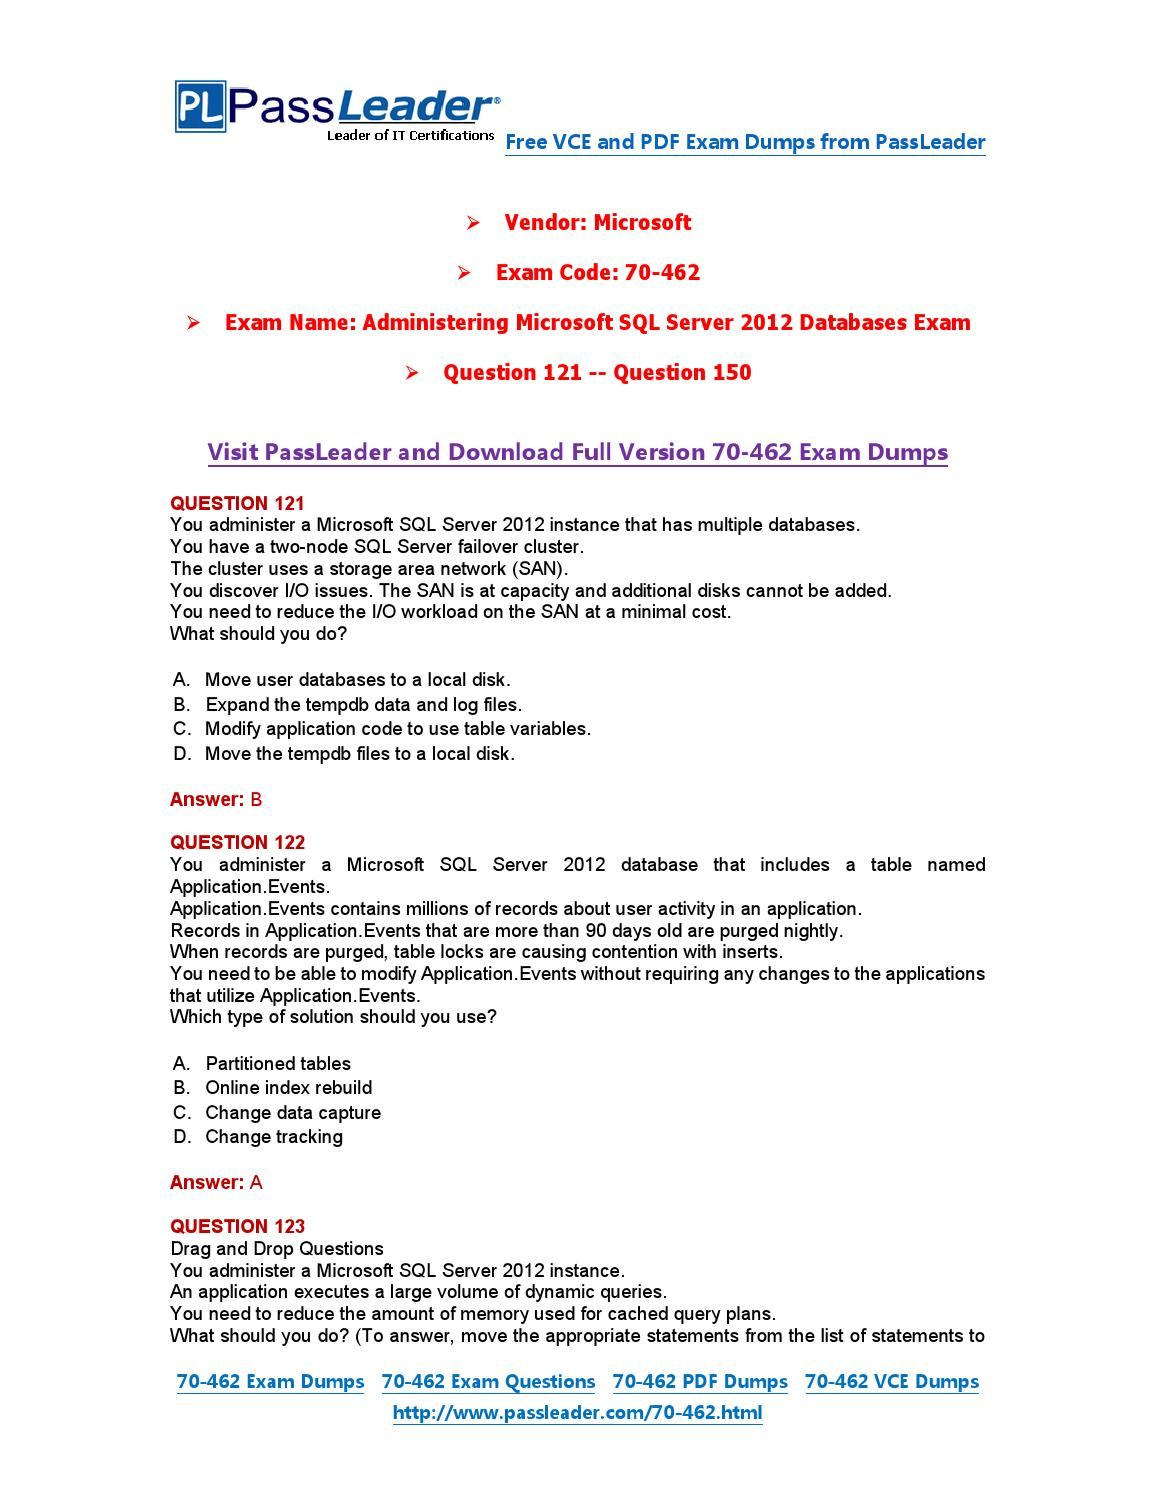 2016 New 70 462 Exam Dumps For Free Vce And Pdf 121 150 By Exam